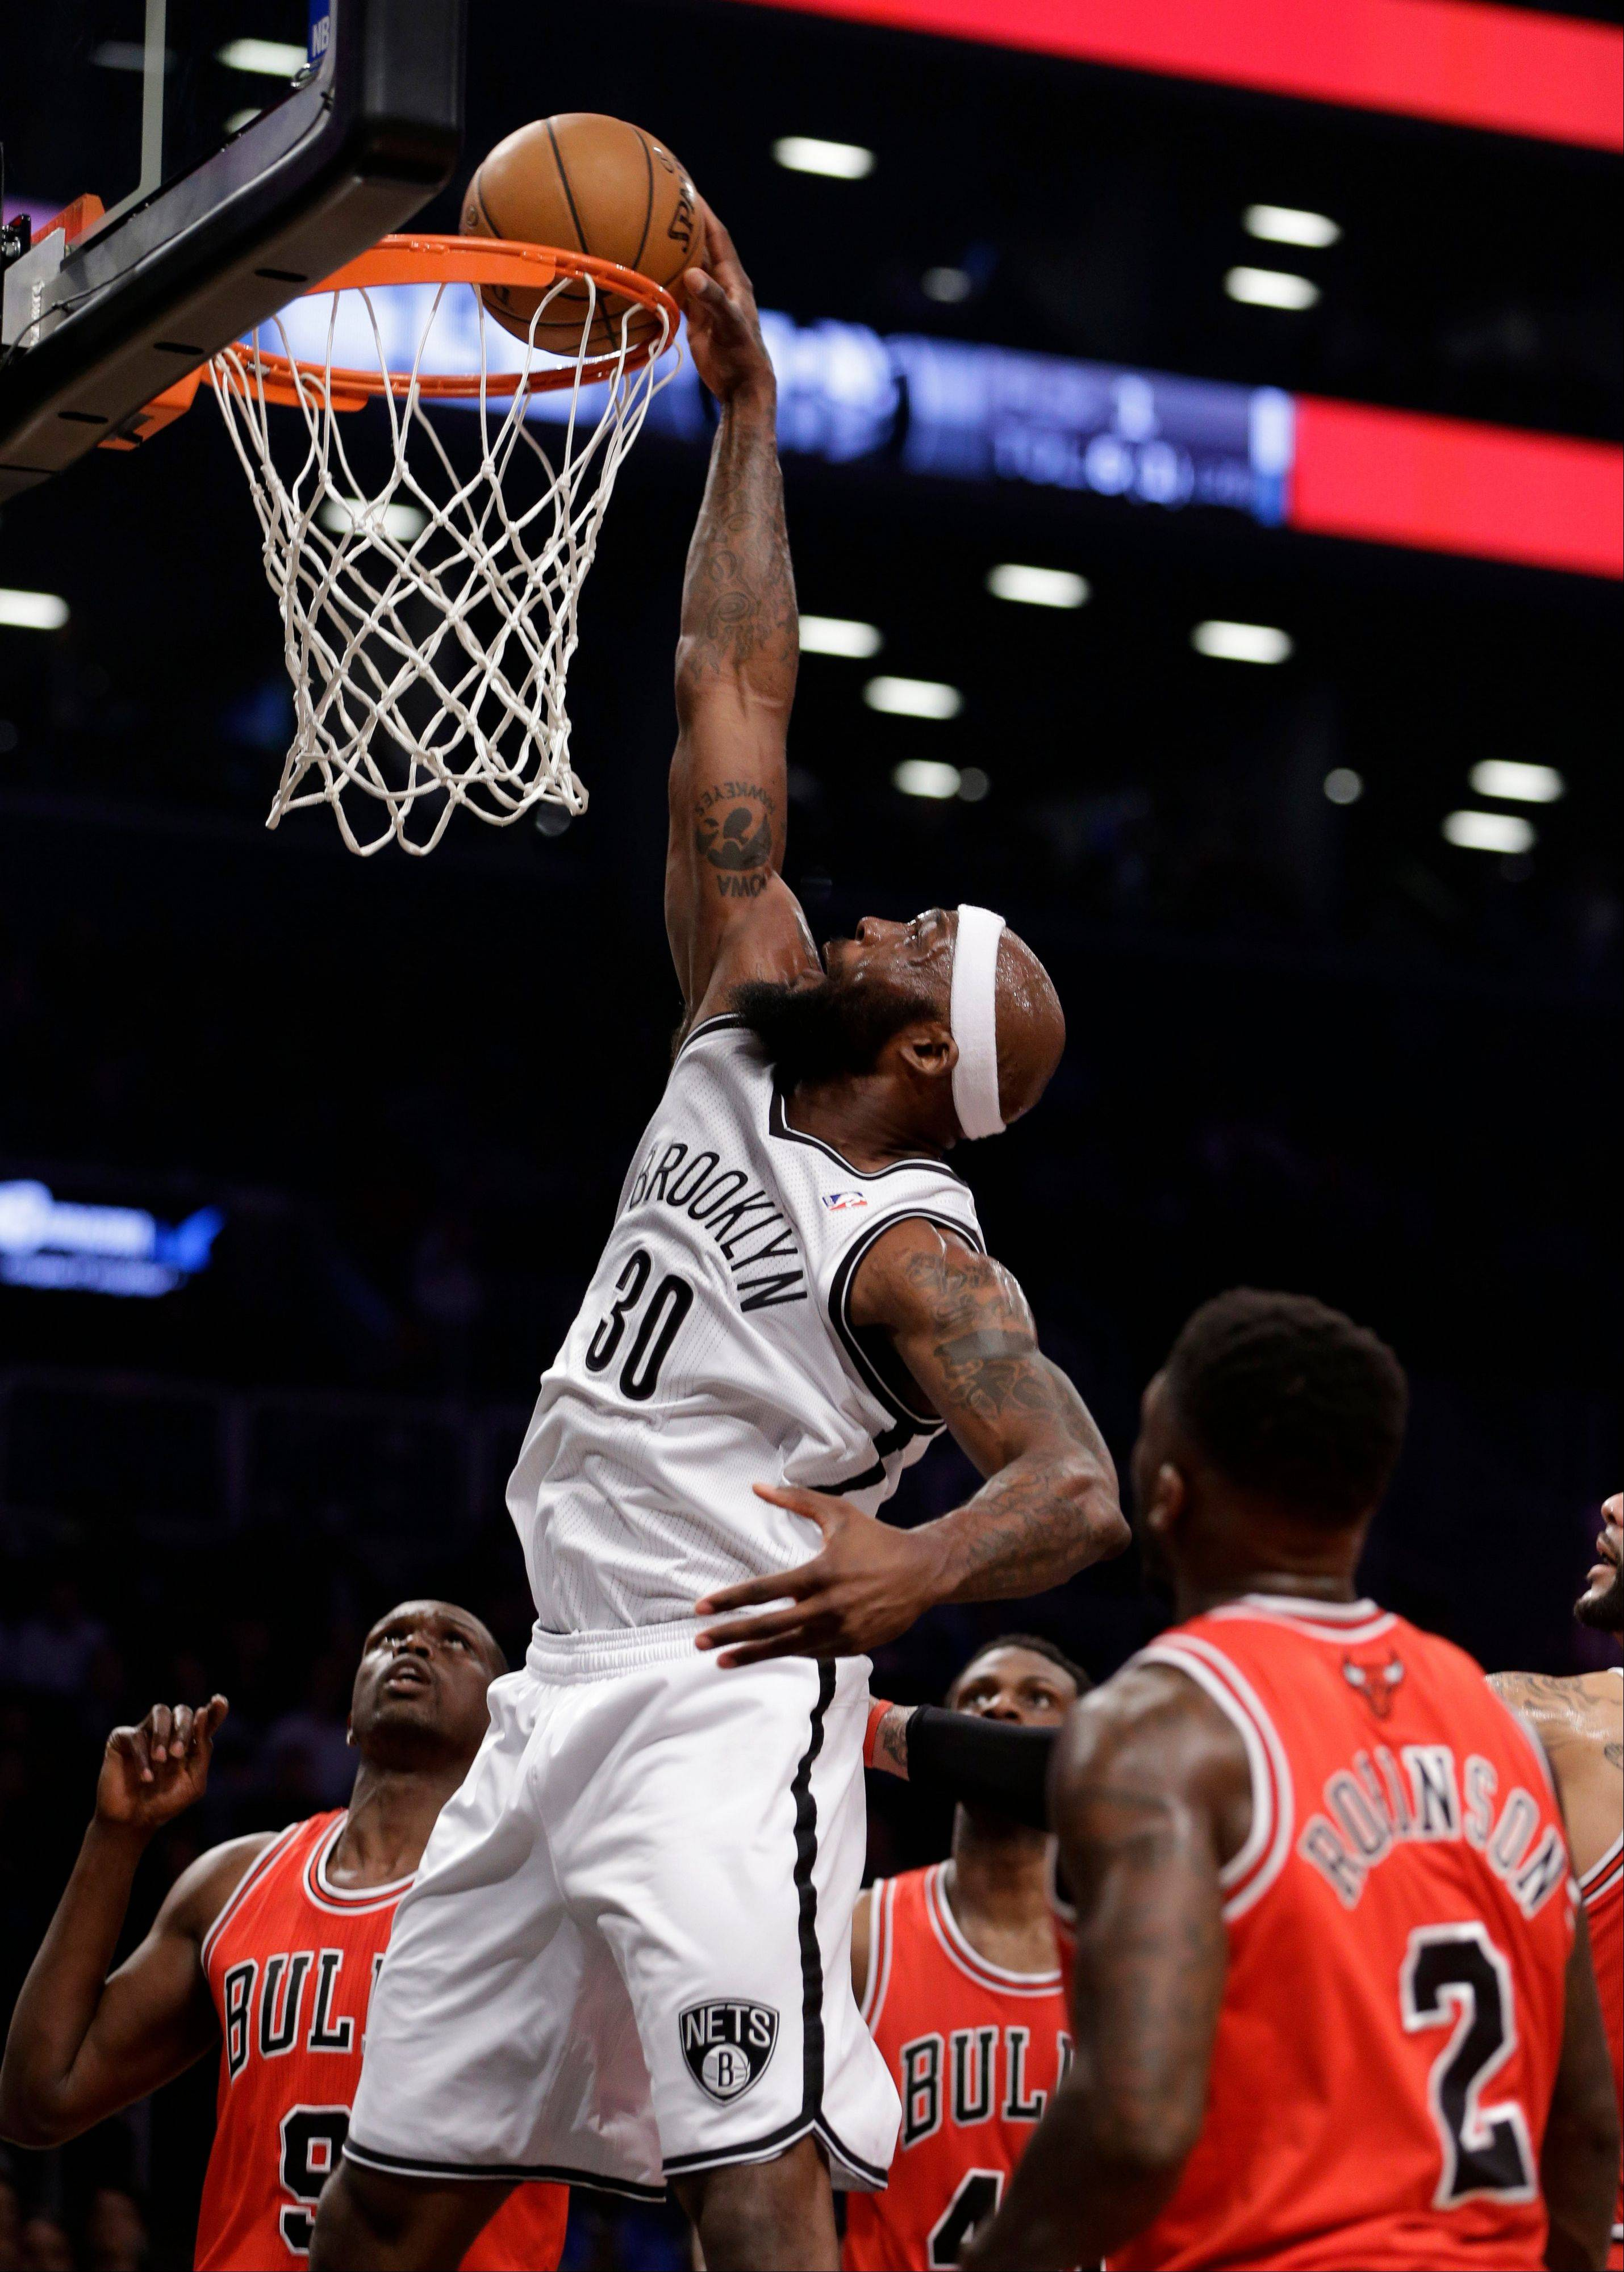 Brooklyn Nets forward Reggie Evans (30) dunks in the first half of Game 5 of their first-round NBA basketball playoff series against the Chicago Bulls, Monday, April 29, 2013, in New York.